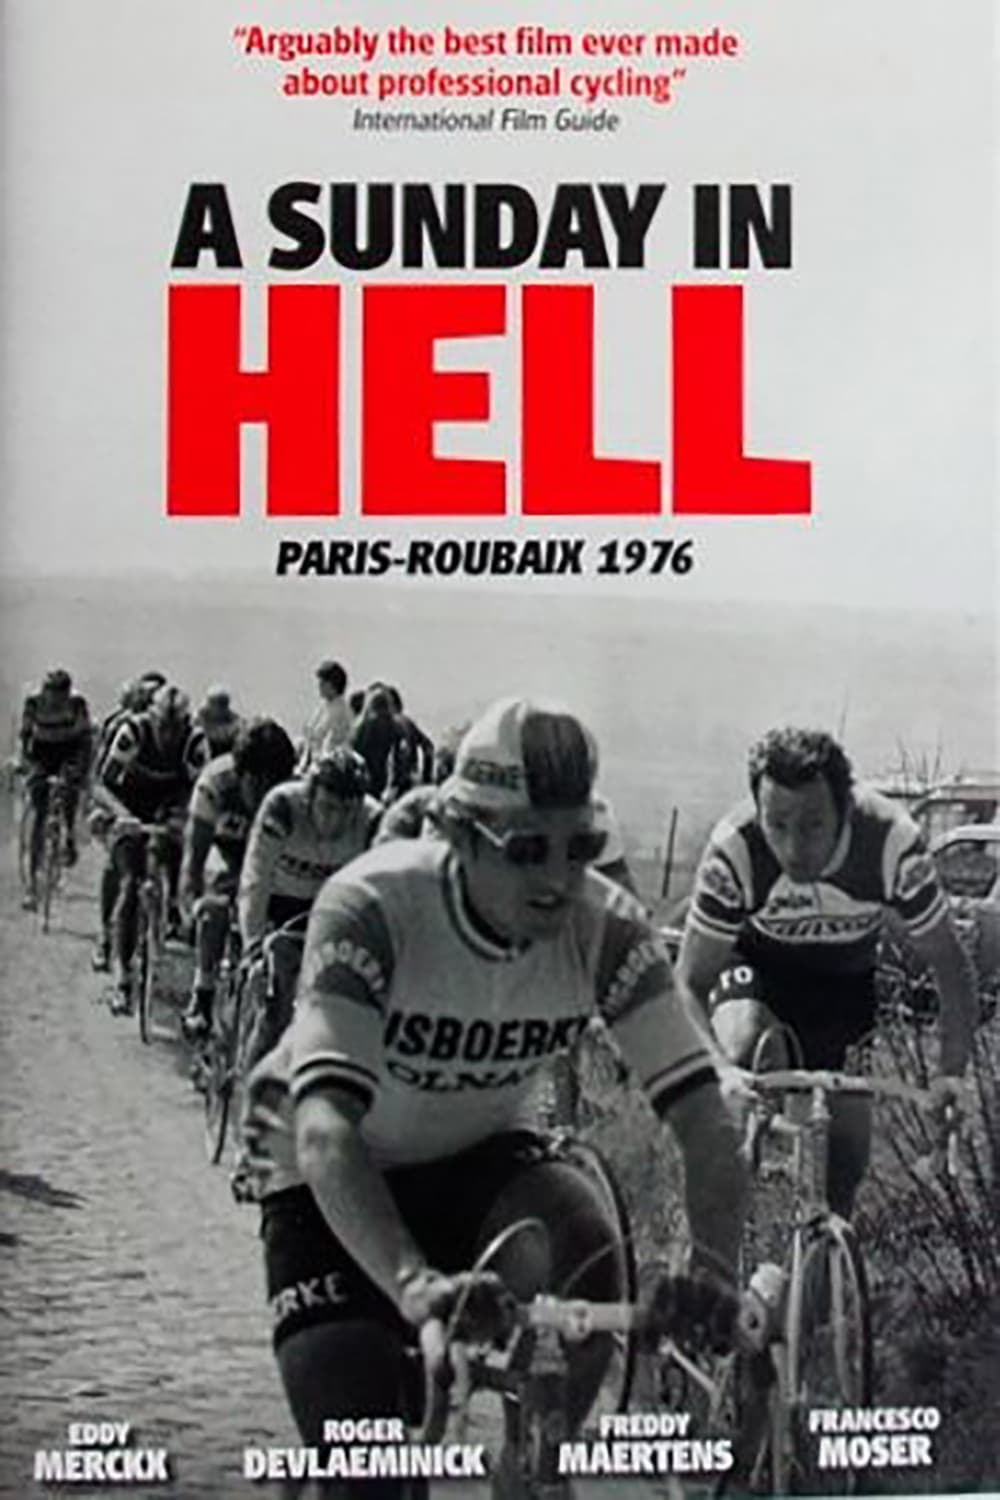 A Sunday in Hell: Paris-Roubaix 1976 (1977)